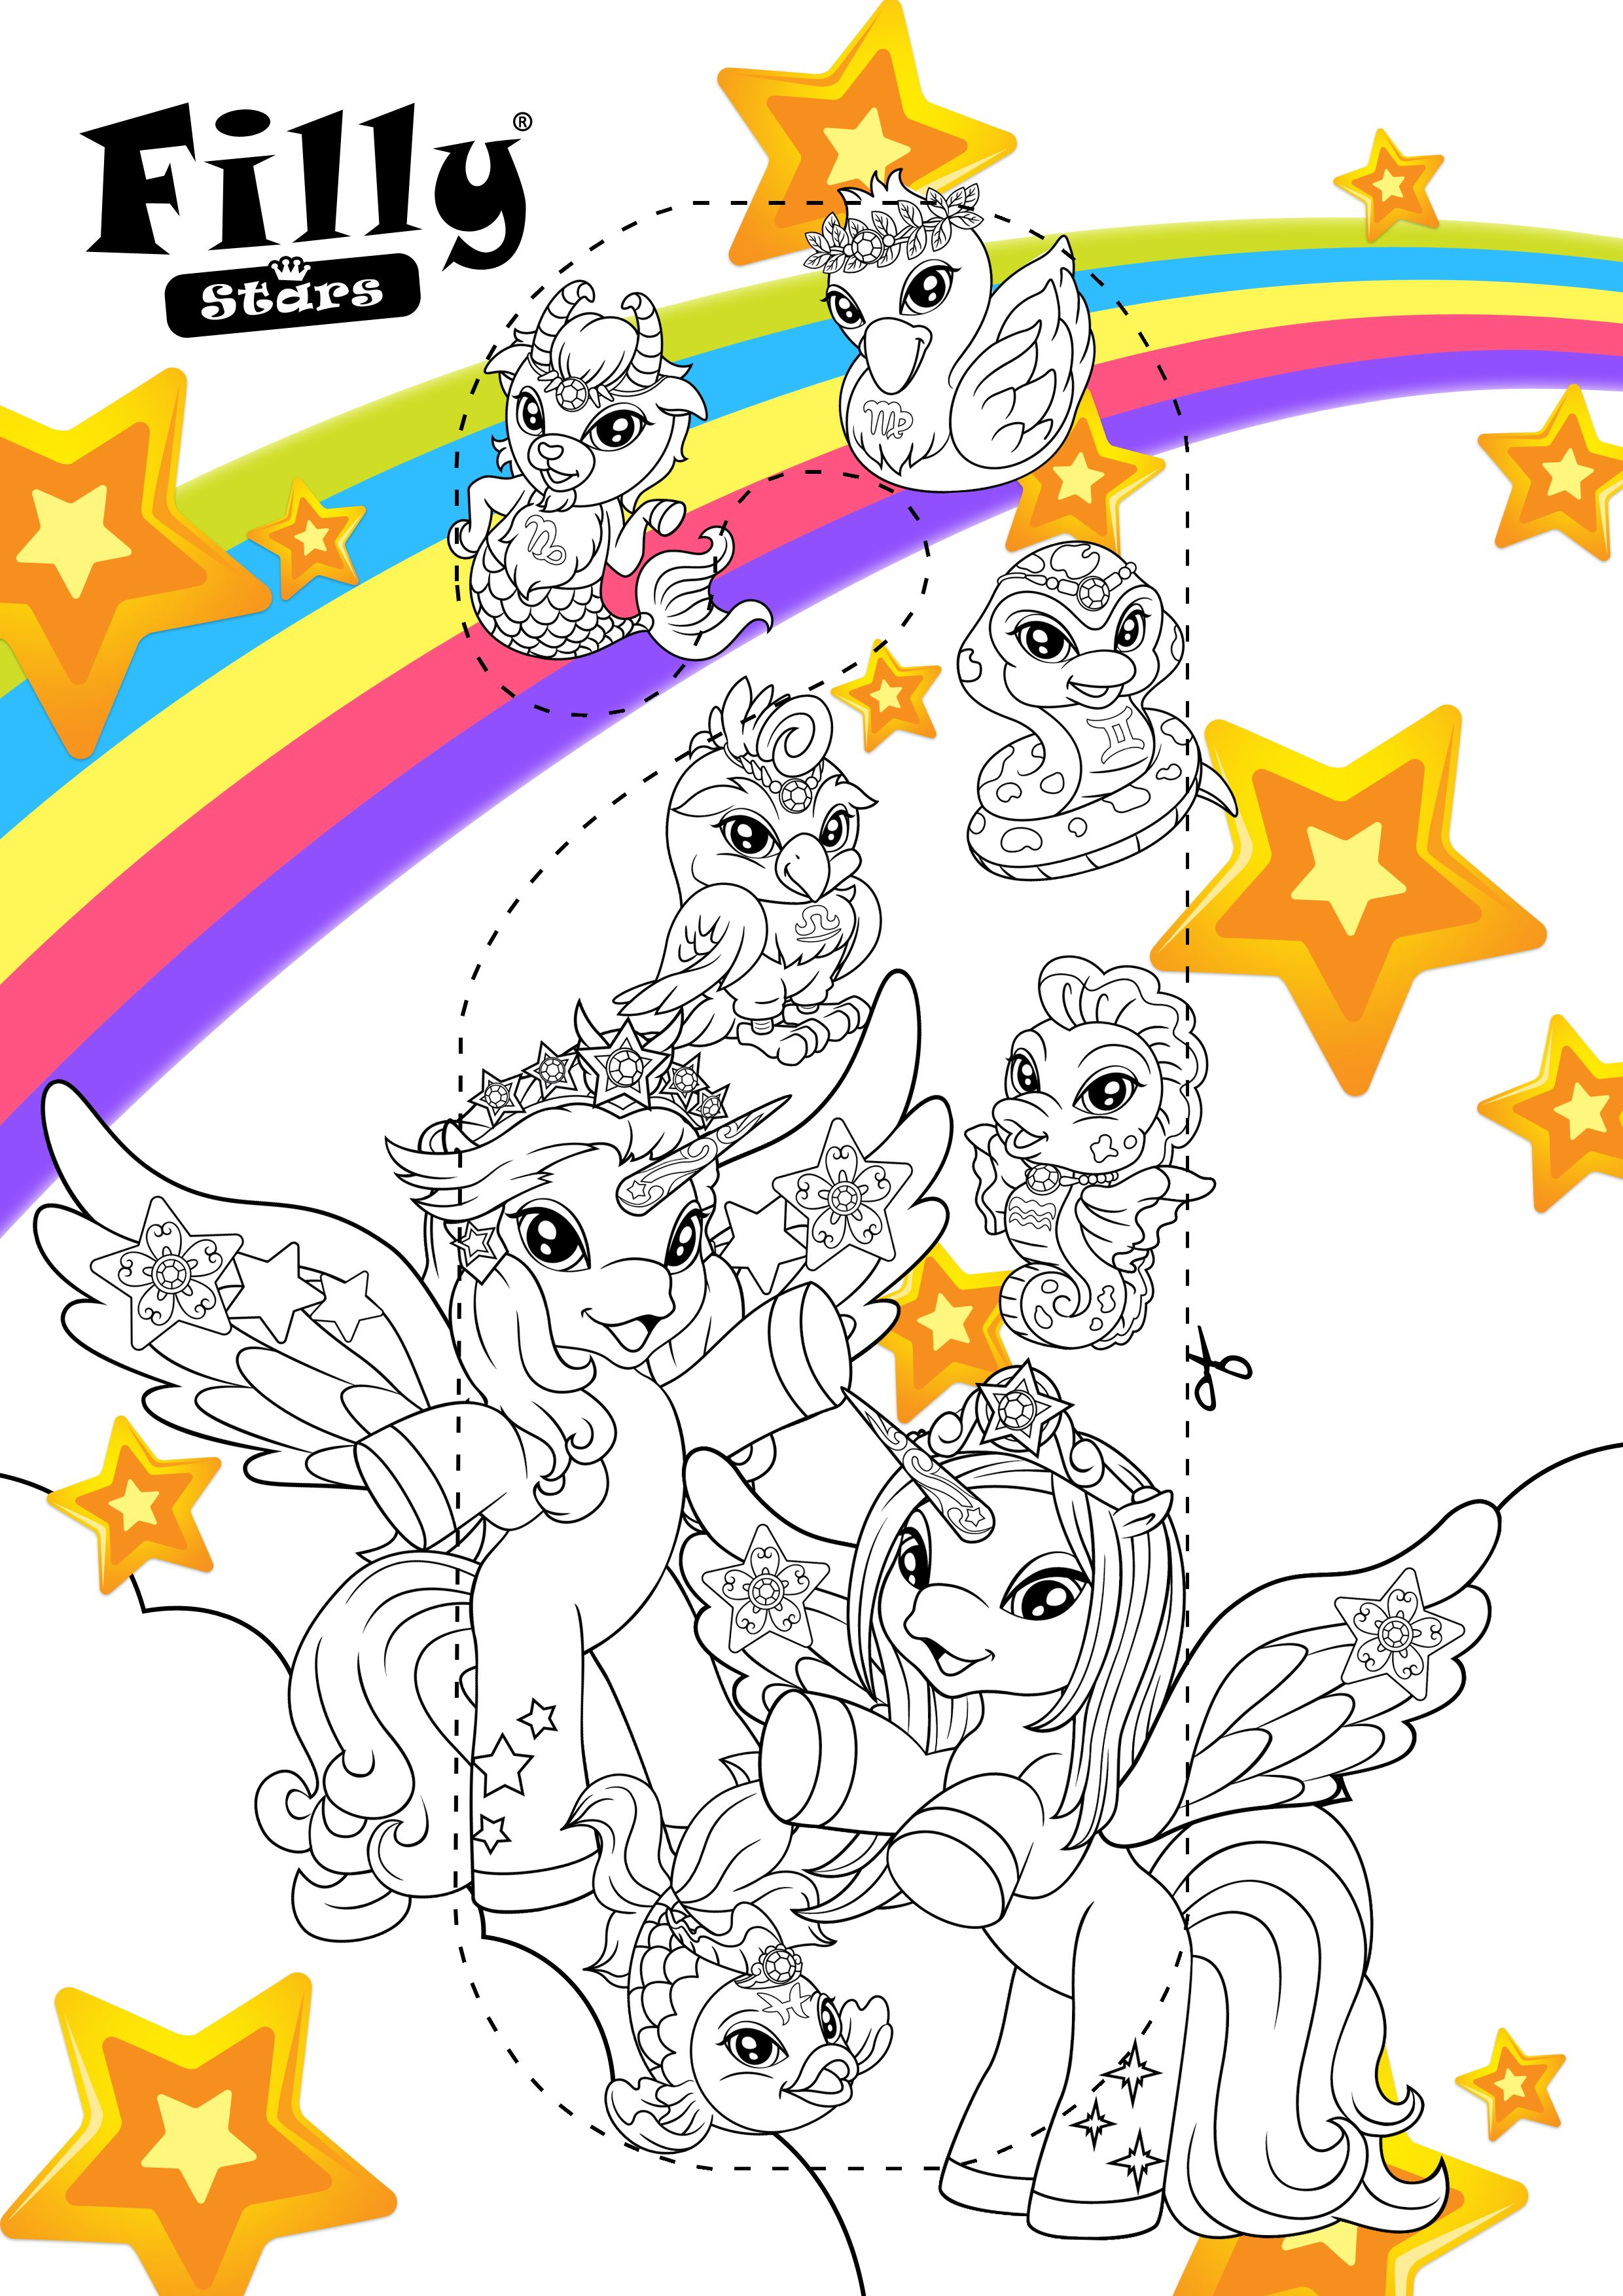 Download And Colour This Filly Star Door Hanger You Can Win A Prize